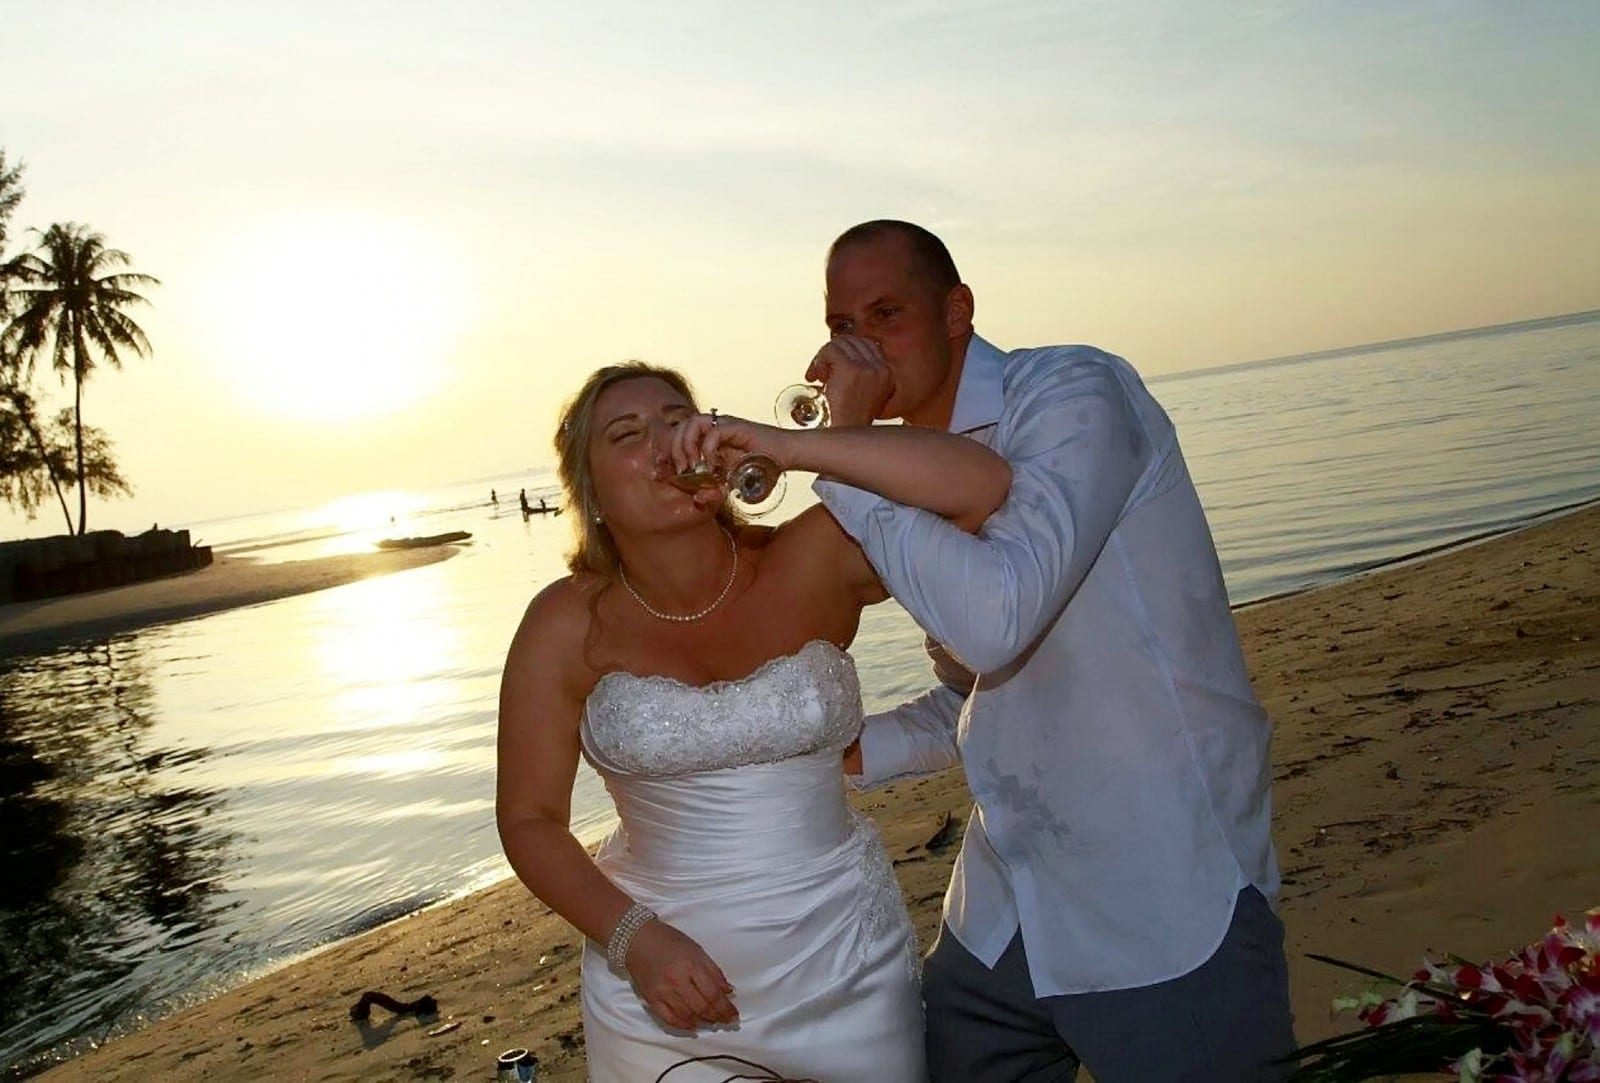 Flaming Heck! A Coconut Almost Killed Me – Just Days After My Wedding